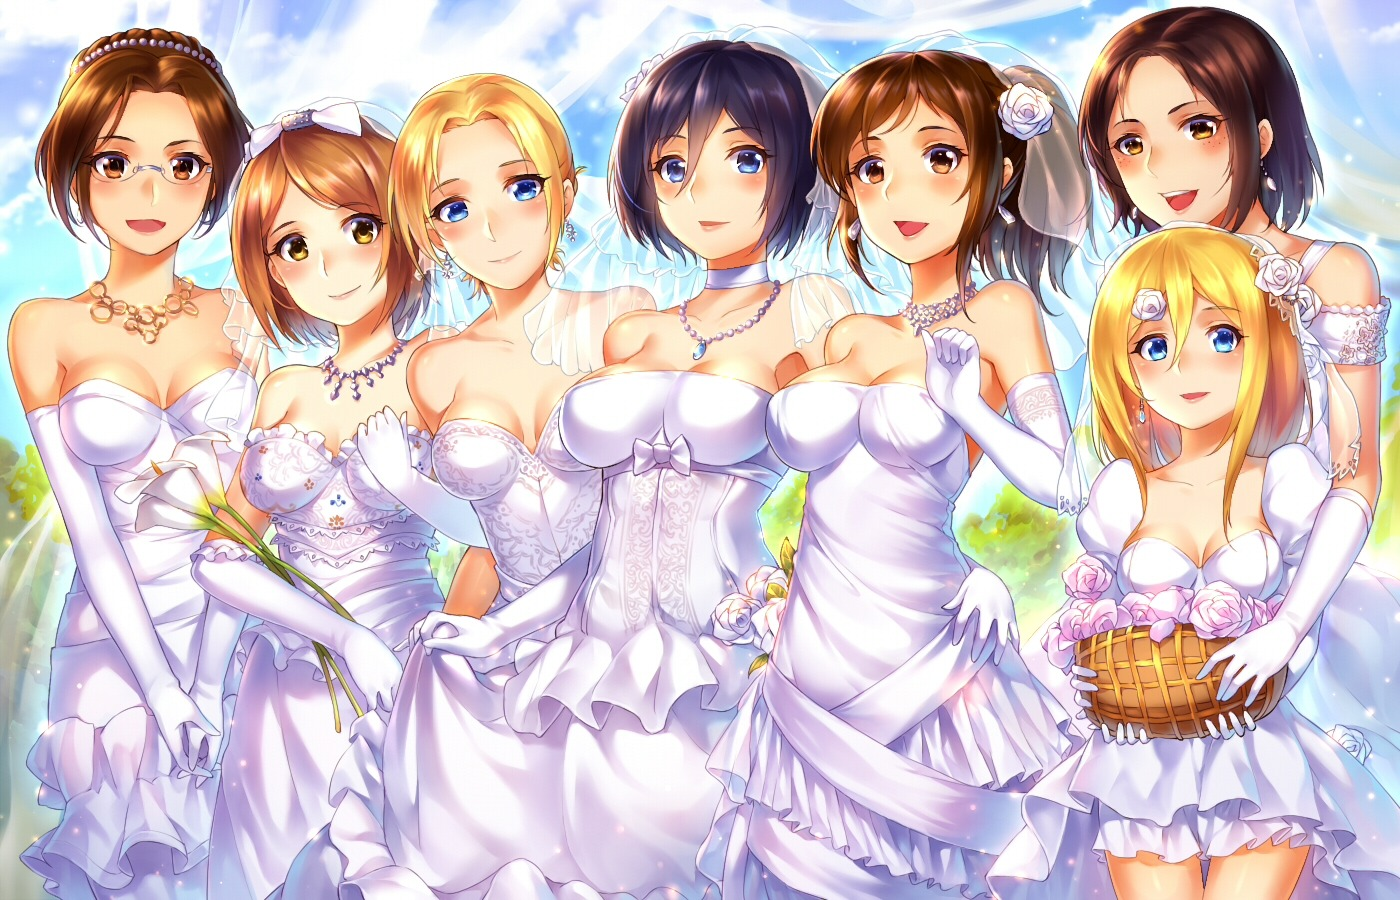 annie_leonhardt christa_lenz cleavage dress hanji_zoe megane mikasa_ackerman petra_ral sasha_browse shingeki_no_kyojin suika01 wedding_dress ymir_(shingeki_no_kyojin)